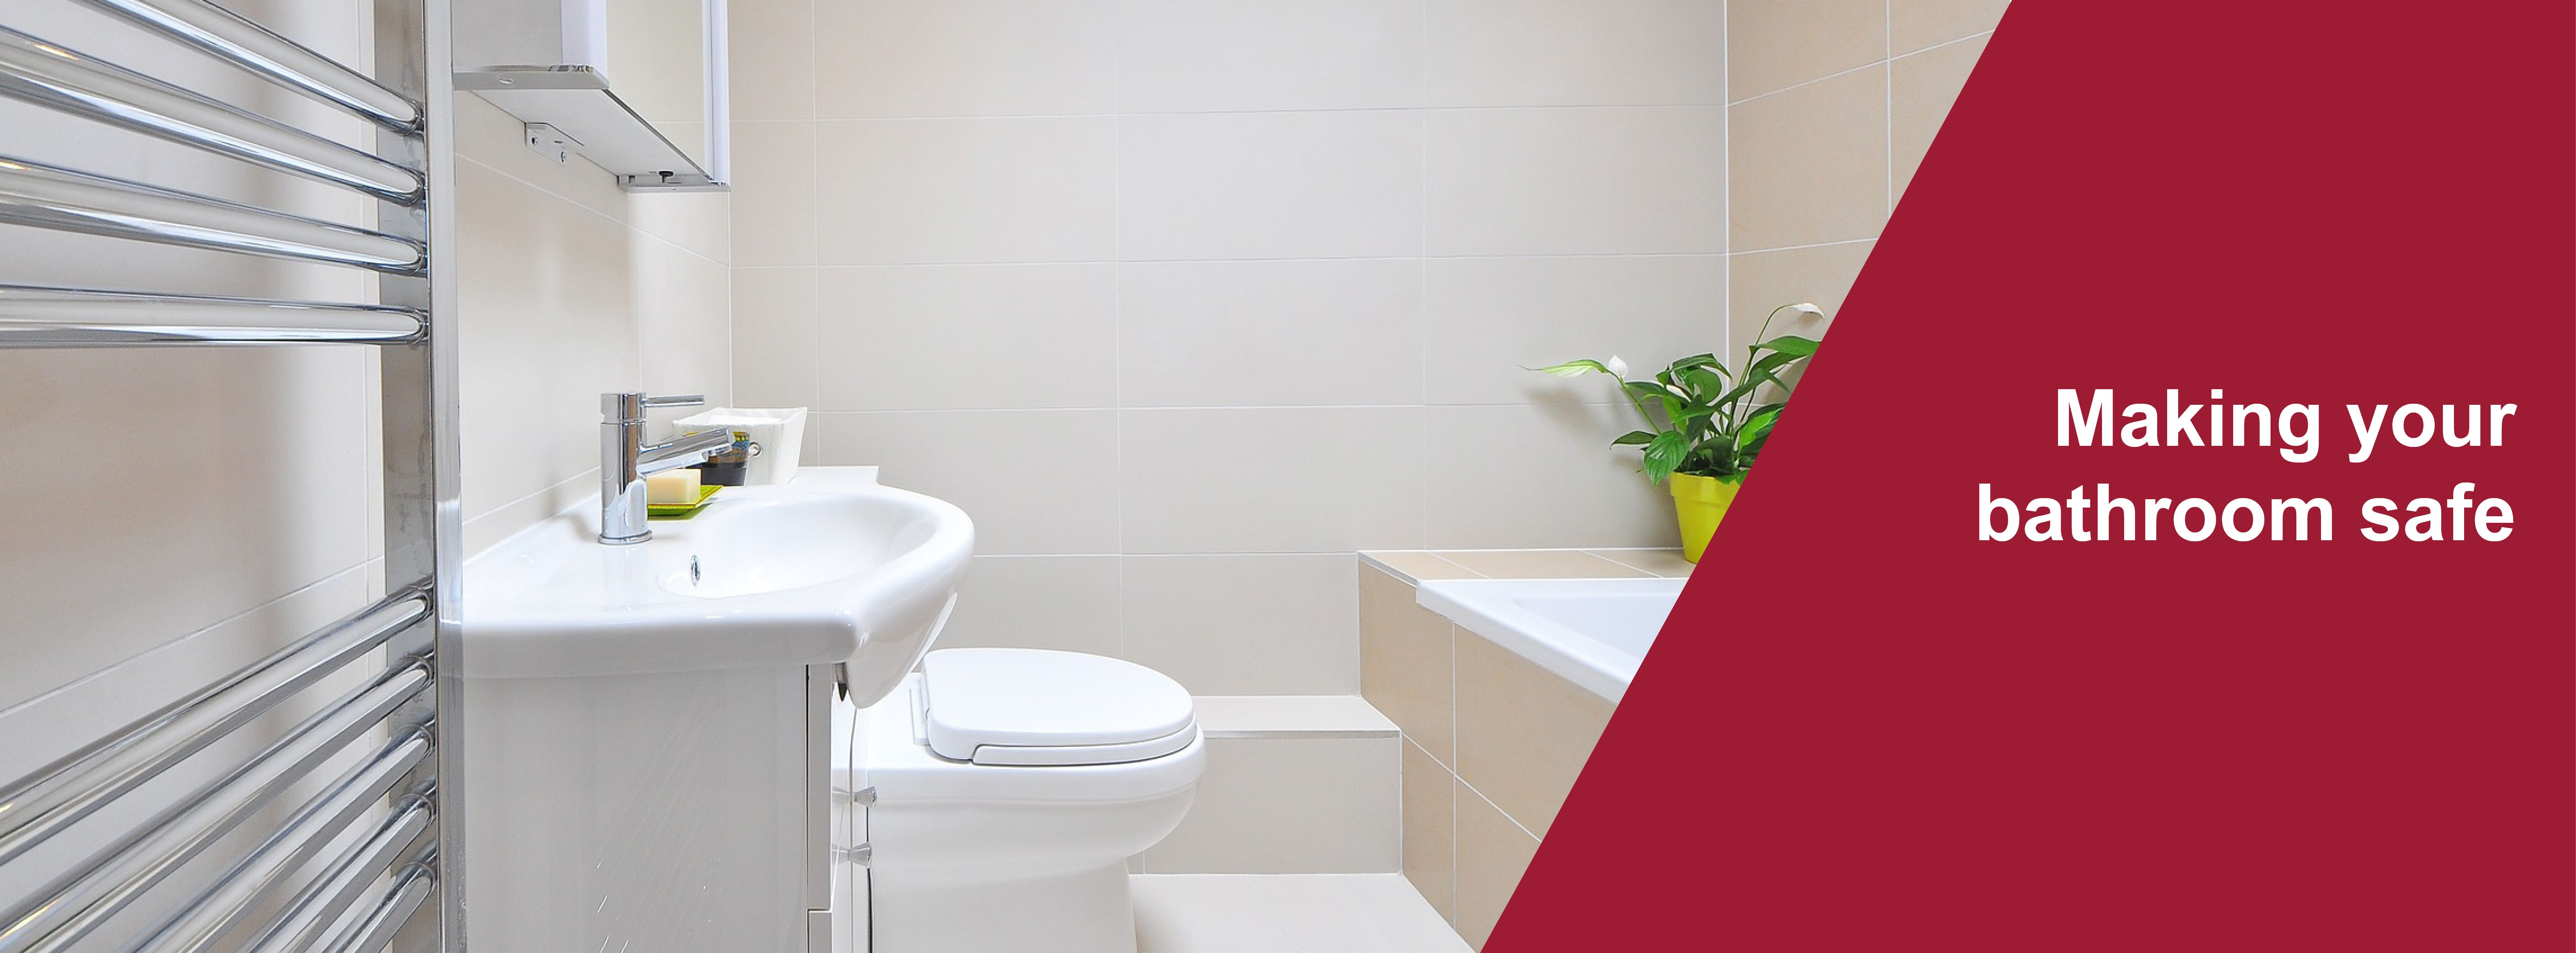 How to make your bathroom safe for your elderly loved ones for How to make bathroom safe for elderly